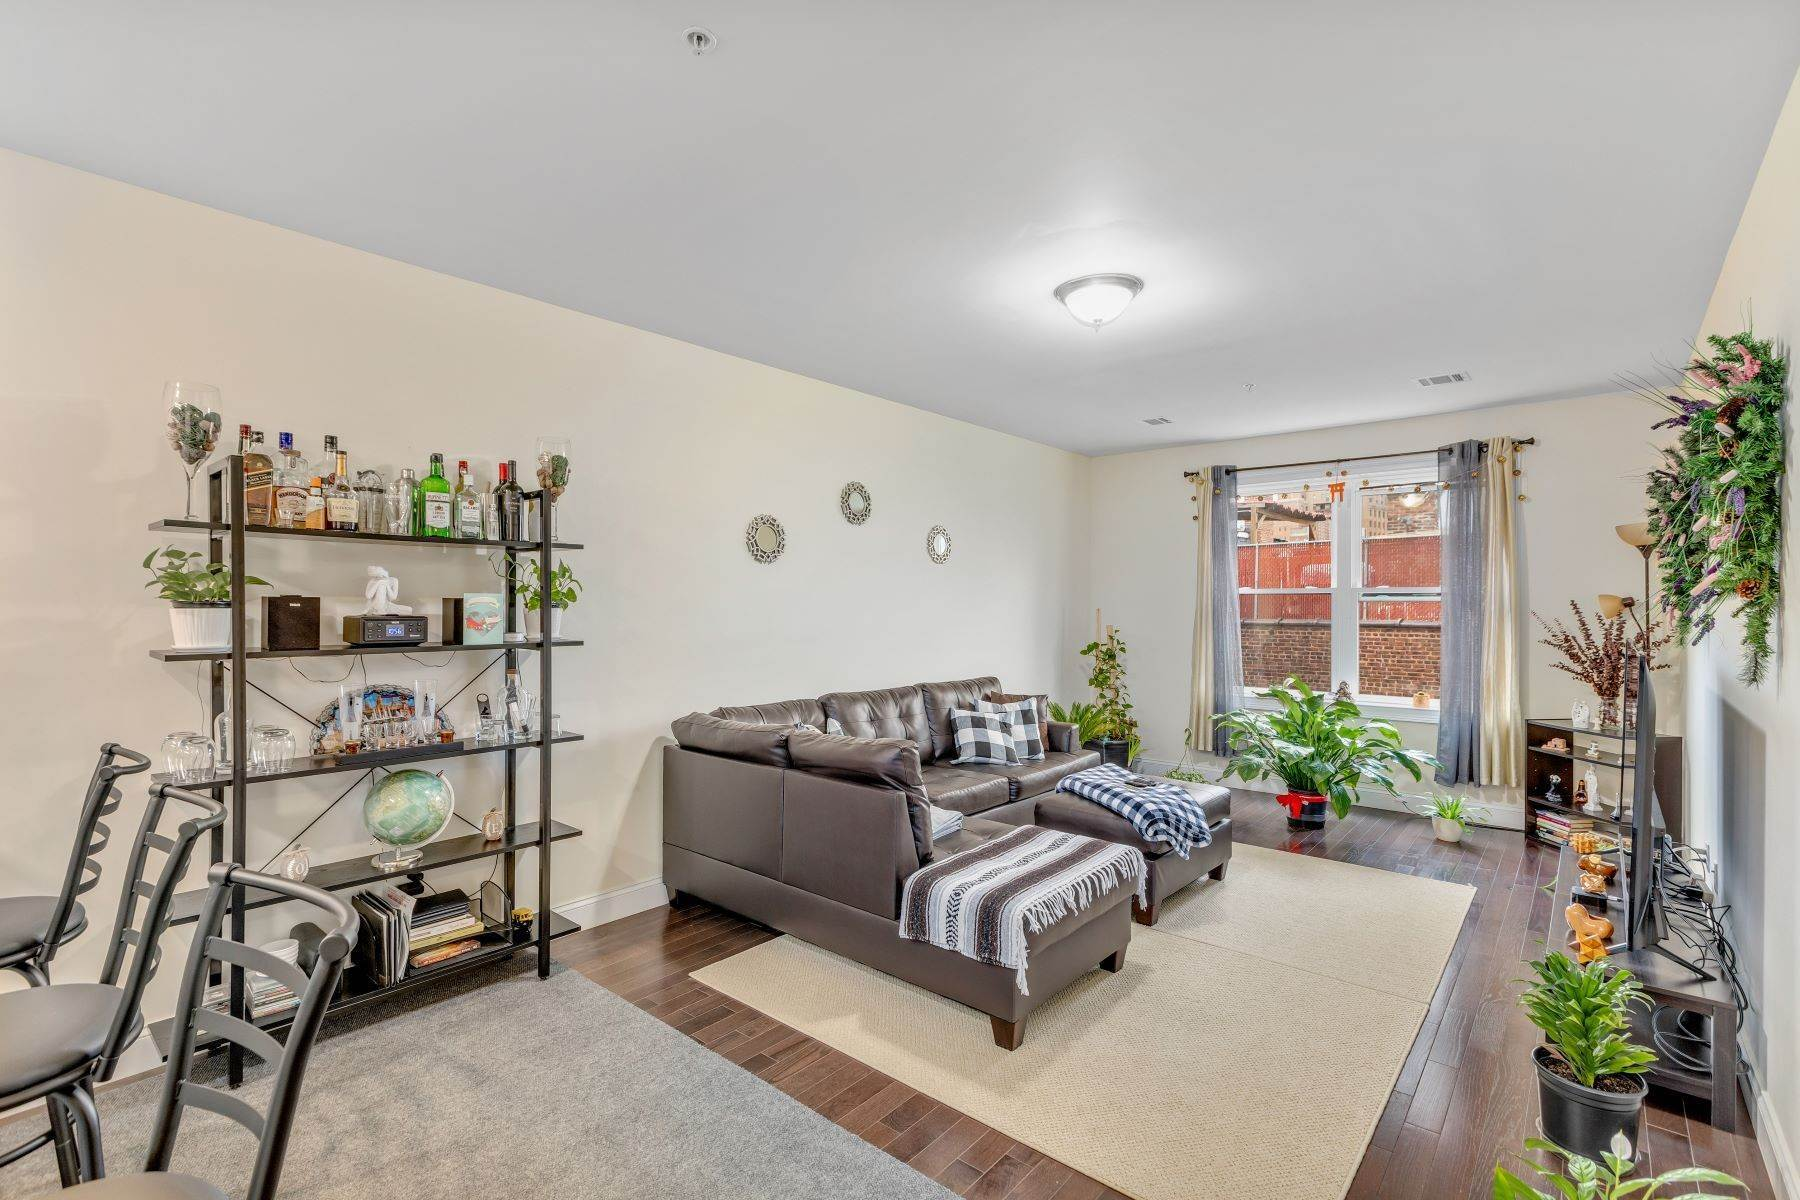 Condominiums for Sale at Welcome home to this fabulous 2 Bedroom condo! 90 Clinton Avenue, Unit 305 Newark, New Jersey 07114 United States